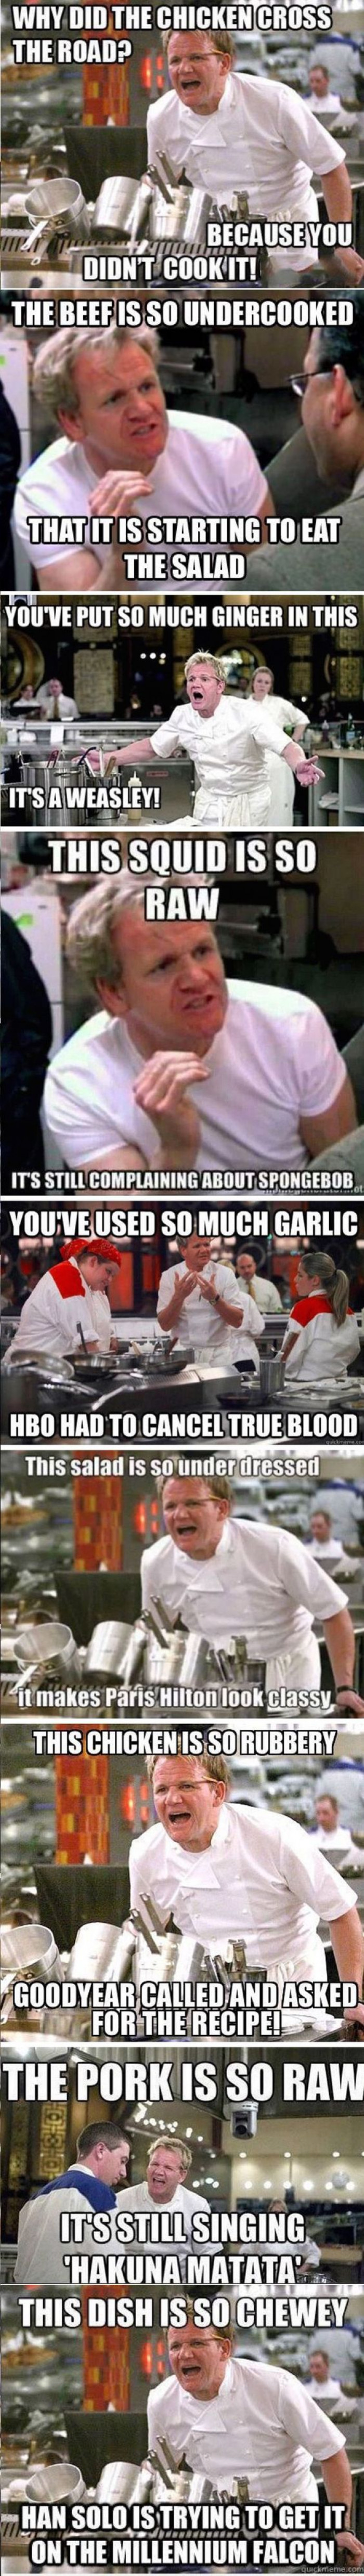 9 Of The Best Gordon Ramsey Insults Guaranteed To Make You Laugh